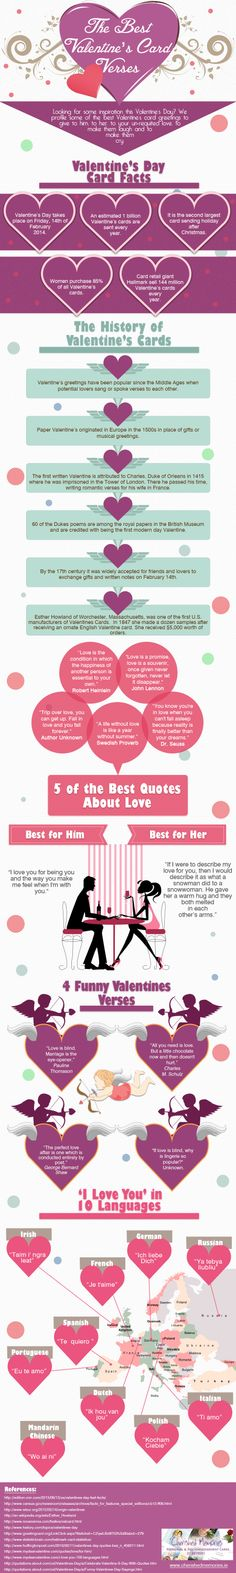 The Best Valentine's Day Card Verses #Infographics — Lightscap3s.com